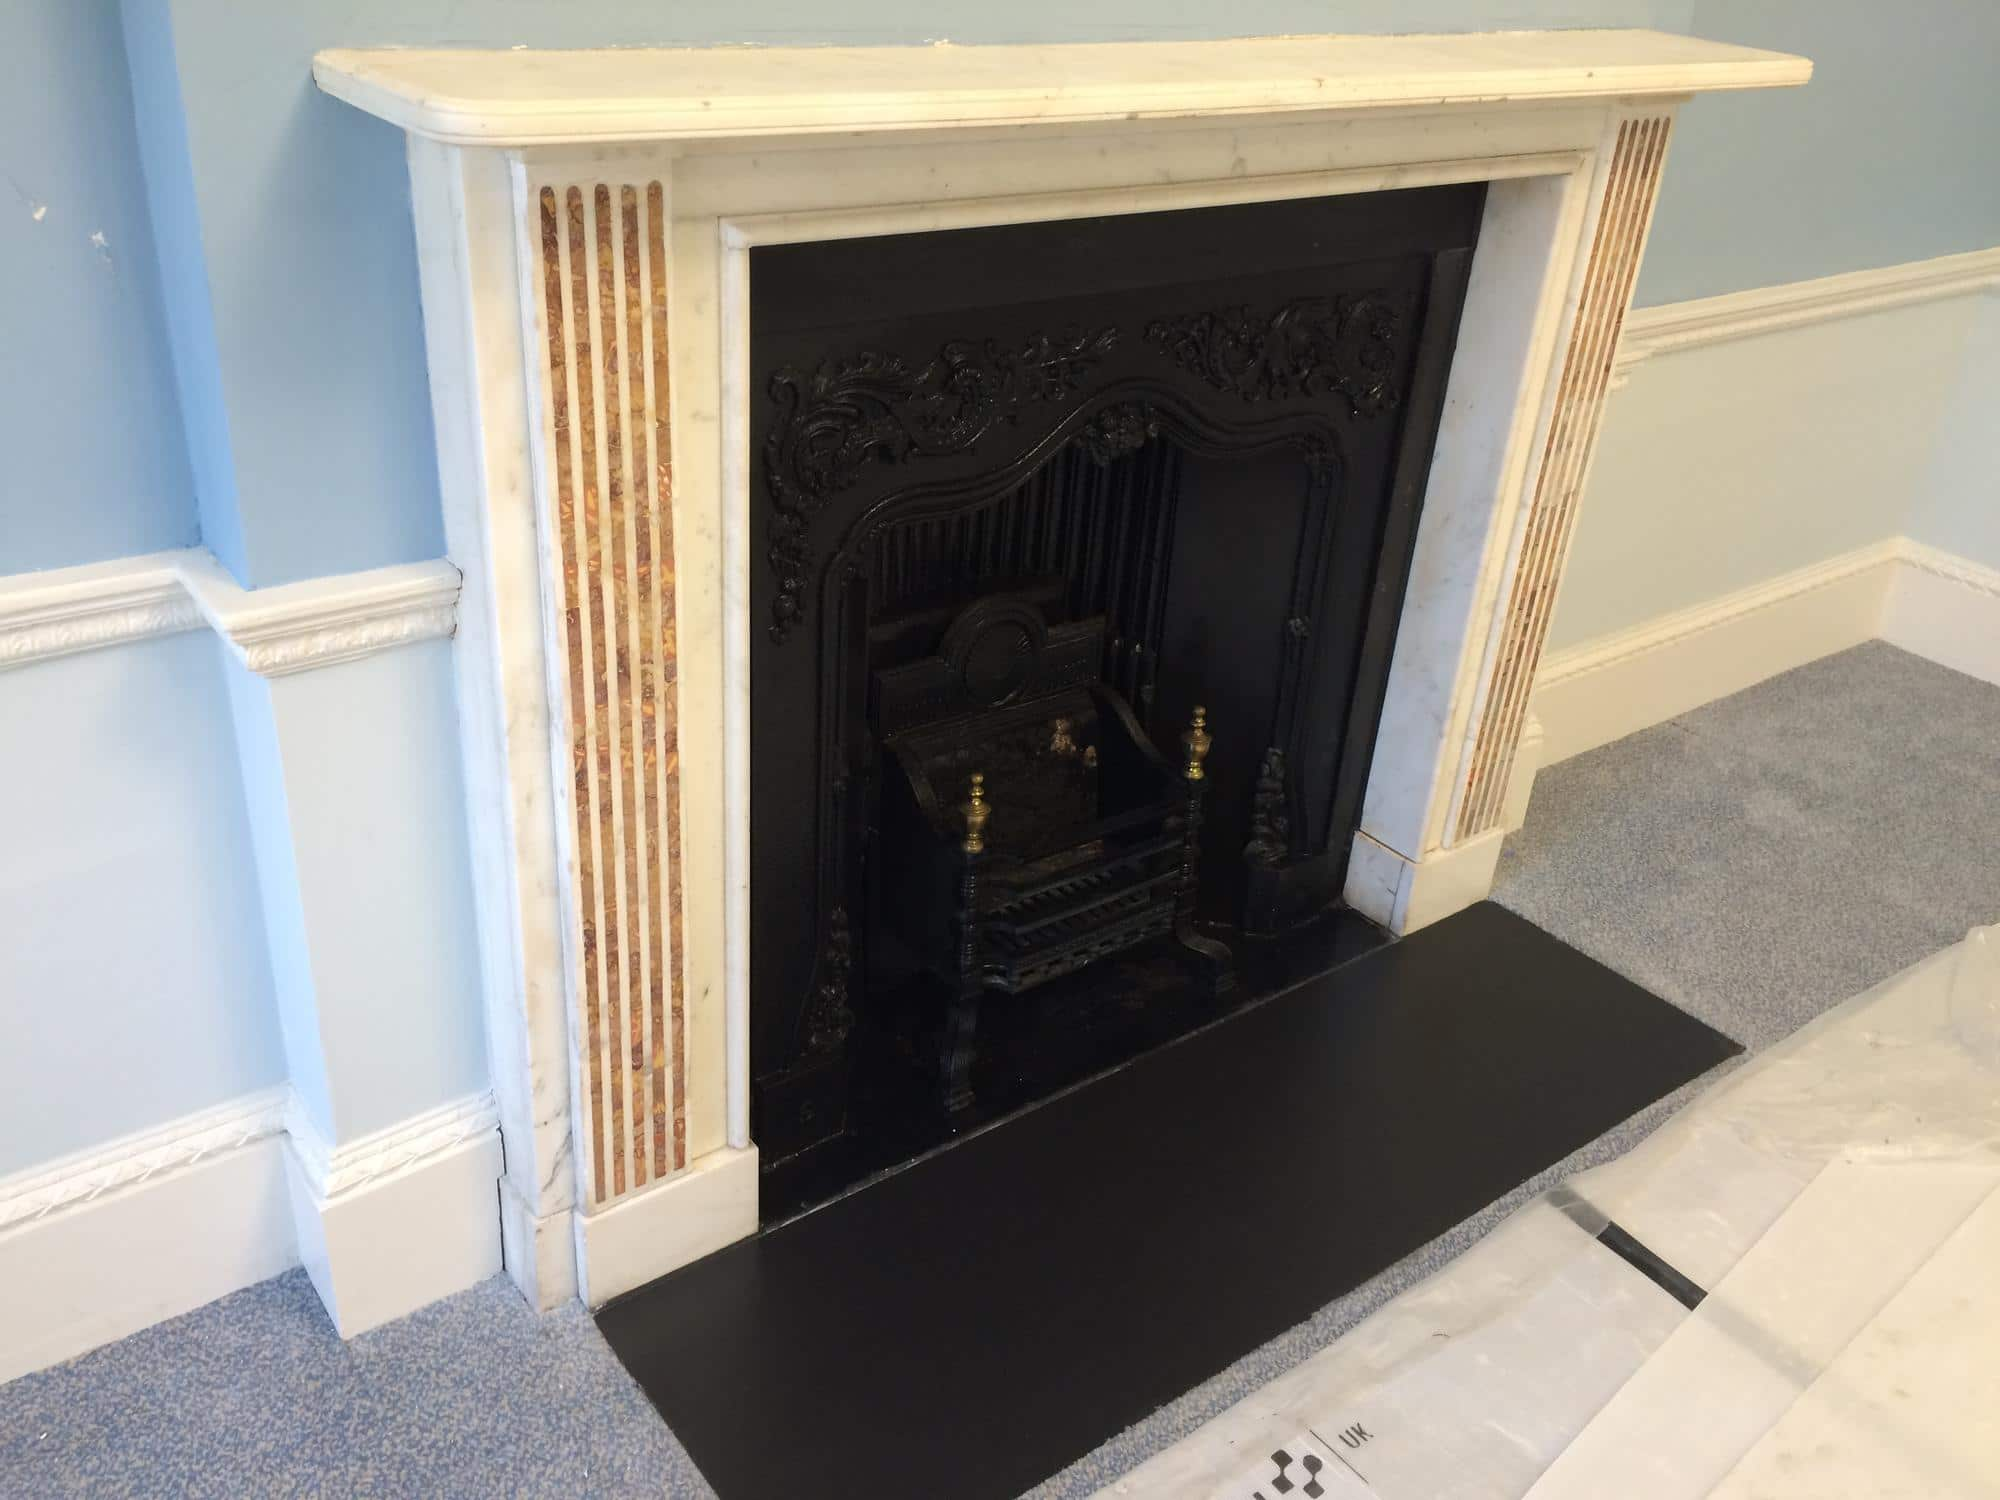 A fireplace clean up and restoration project to a listed building in London. The project demanded using traditional methods only approved by the British museum and conservation rules. I was privileged and delighted to take part of it!